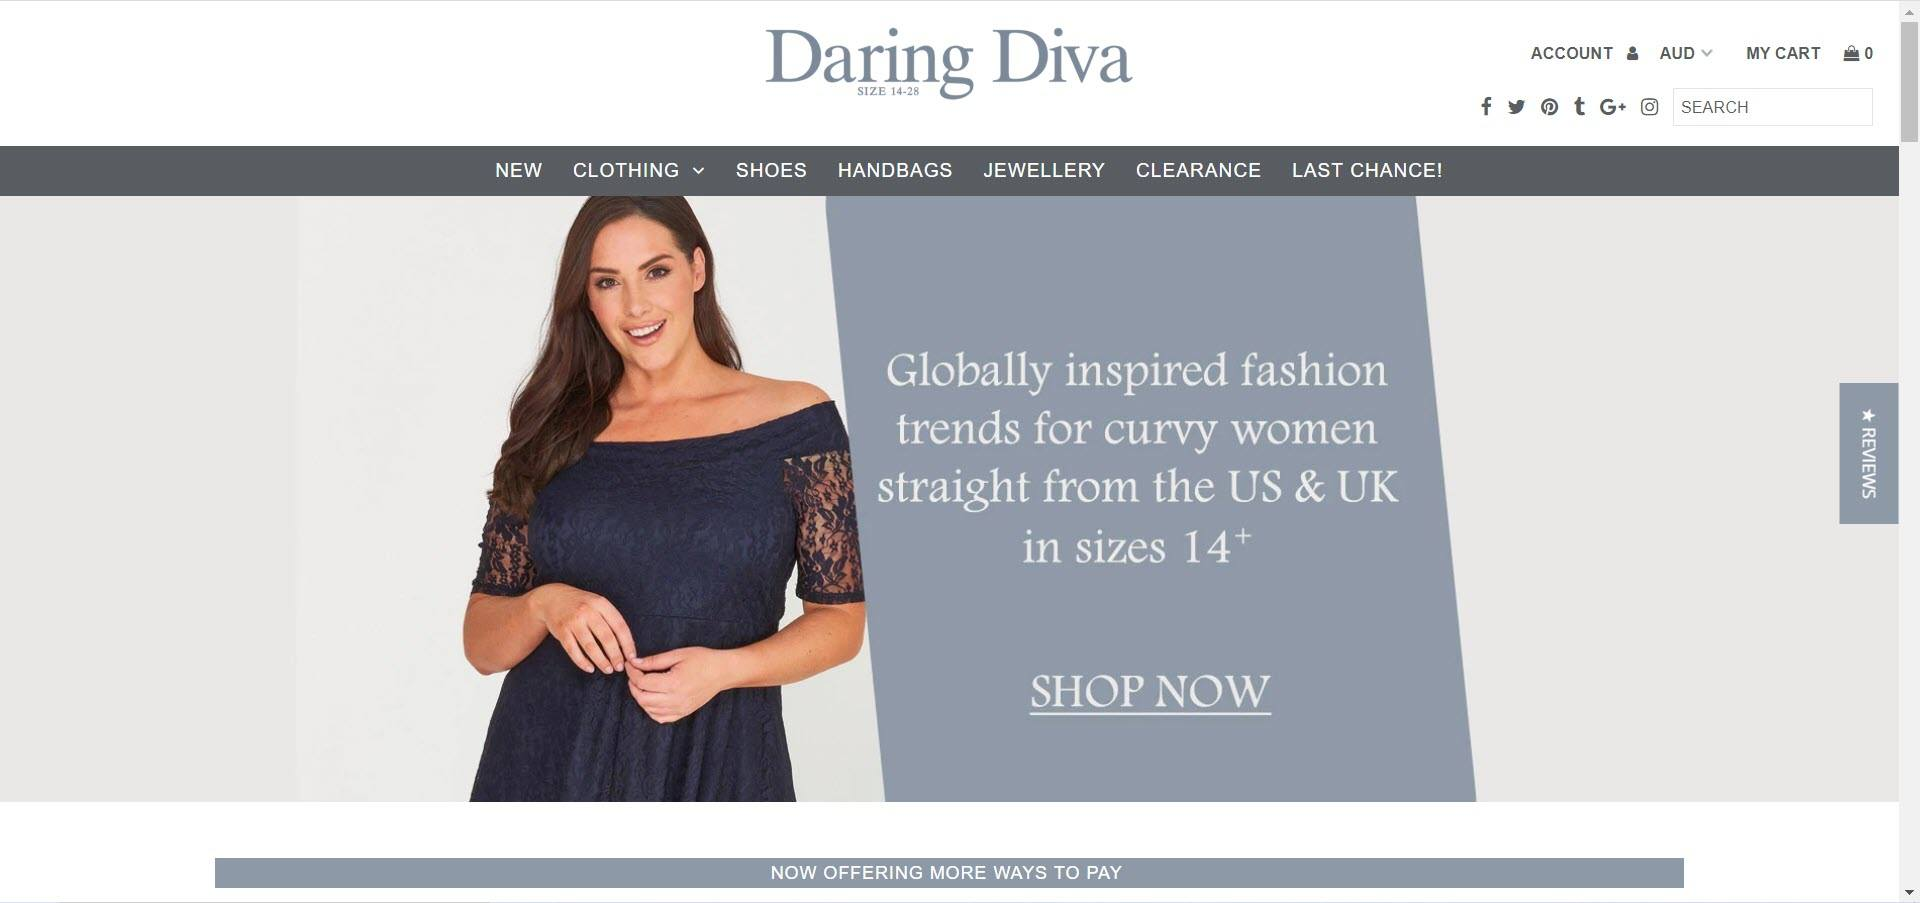 Women's Fashion Affiliate Programs - Daring Diva